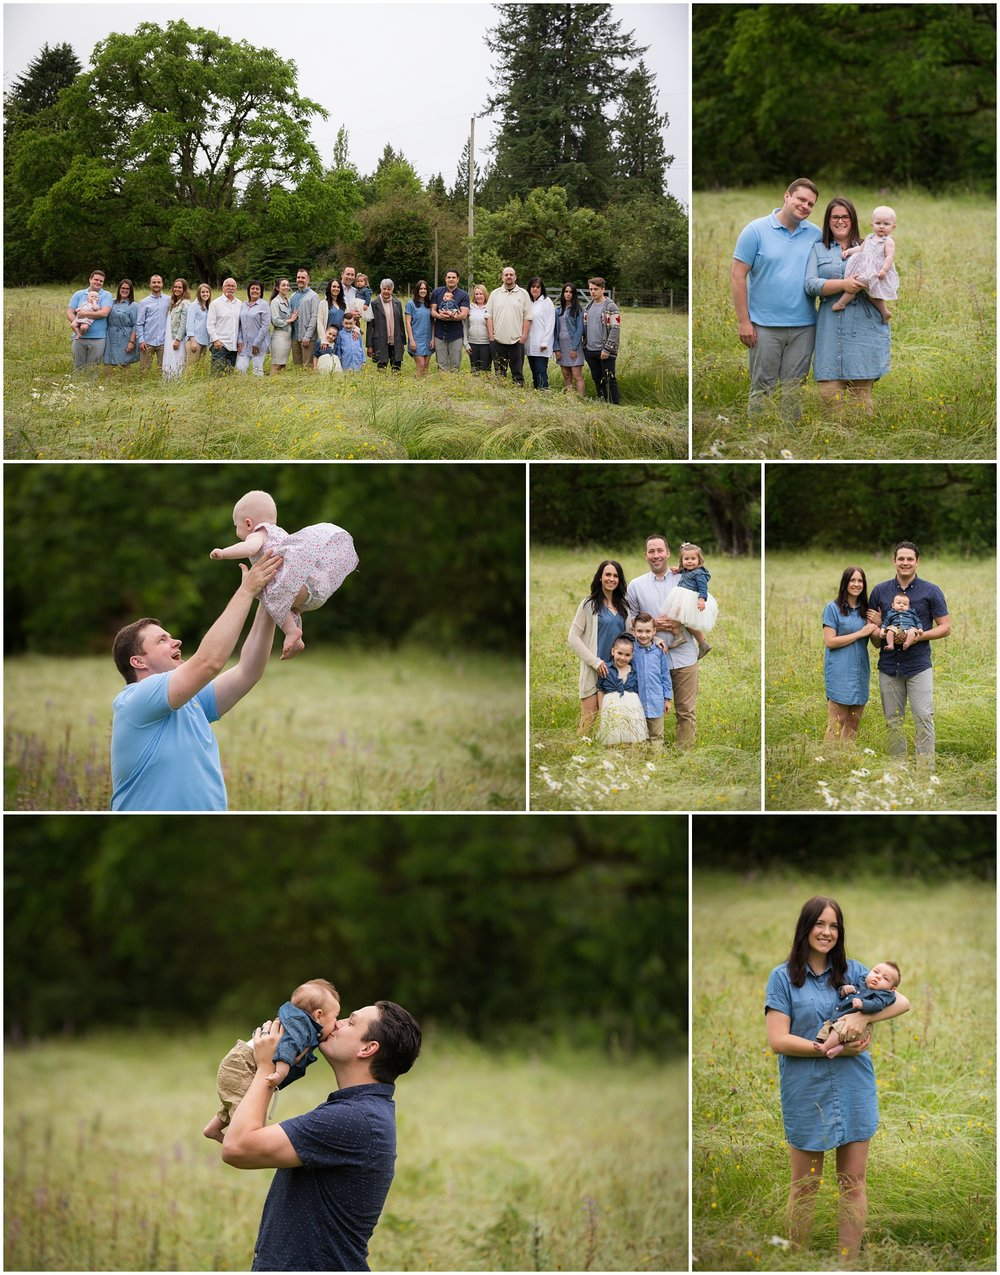 Amazing Day Photography - Derby Reach Park Family Session - Langley Family Photographer (1).jpg